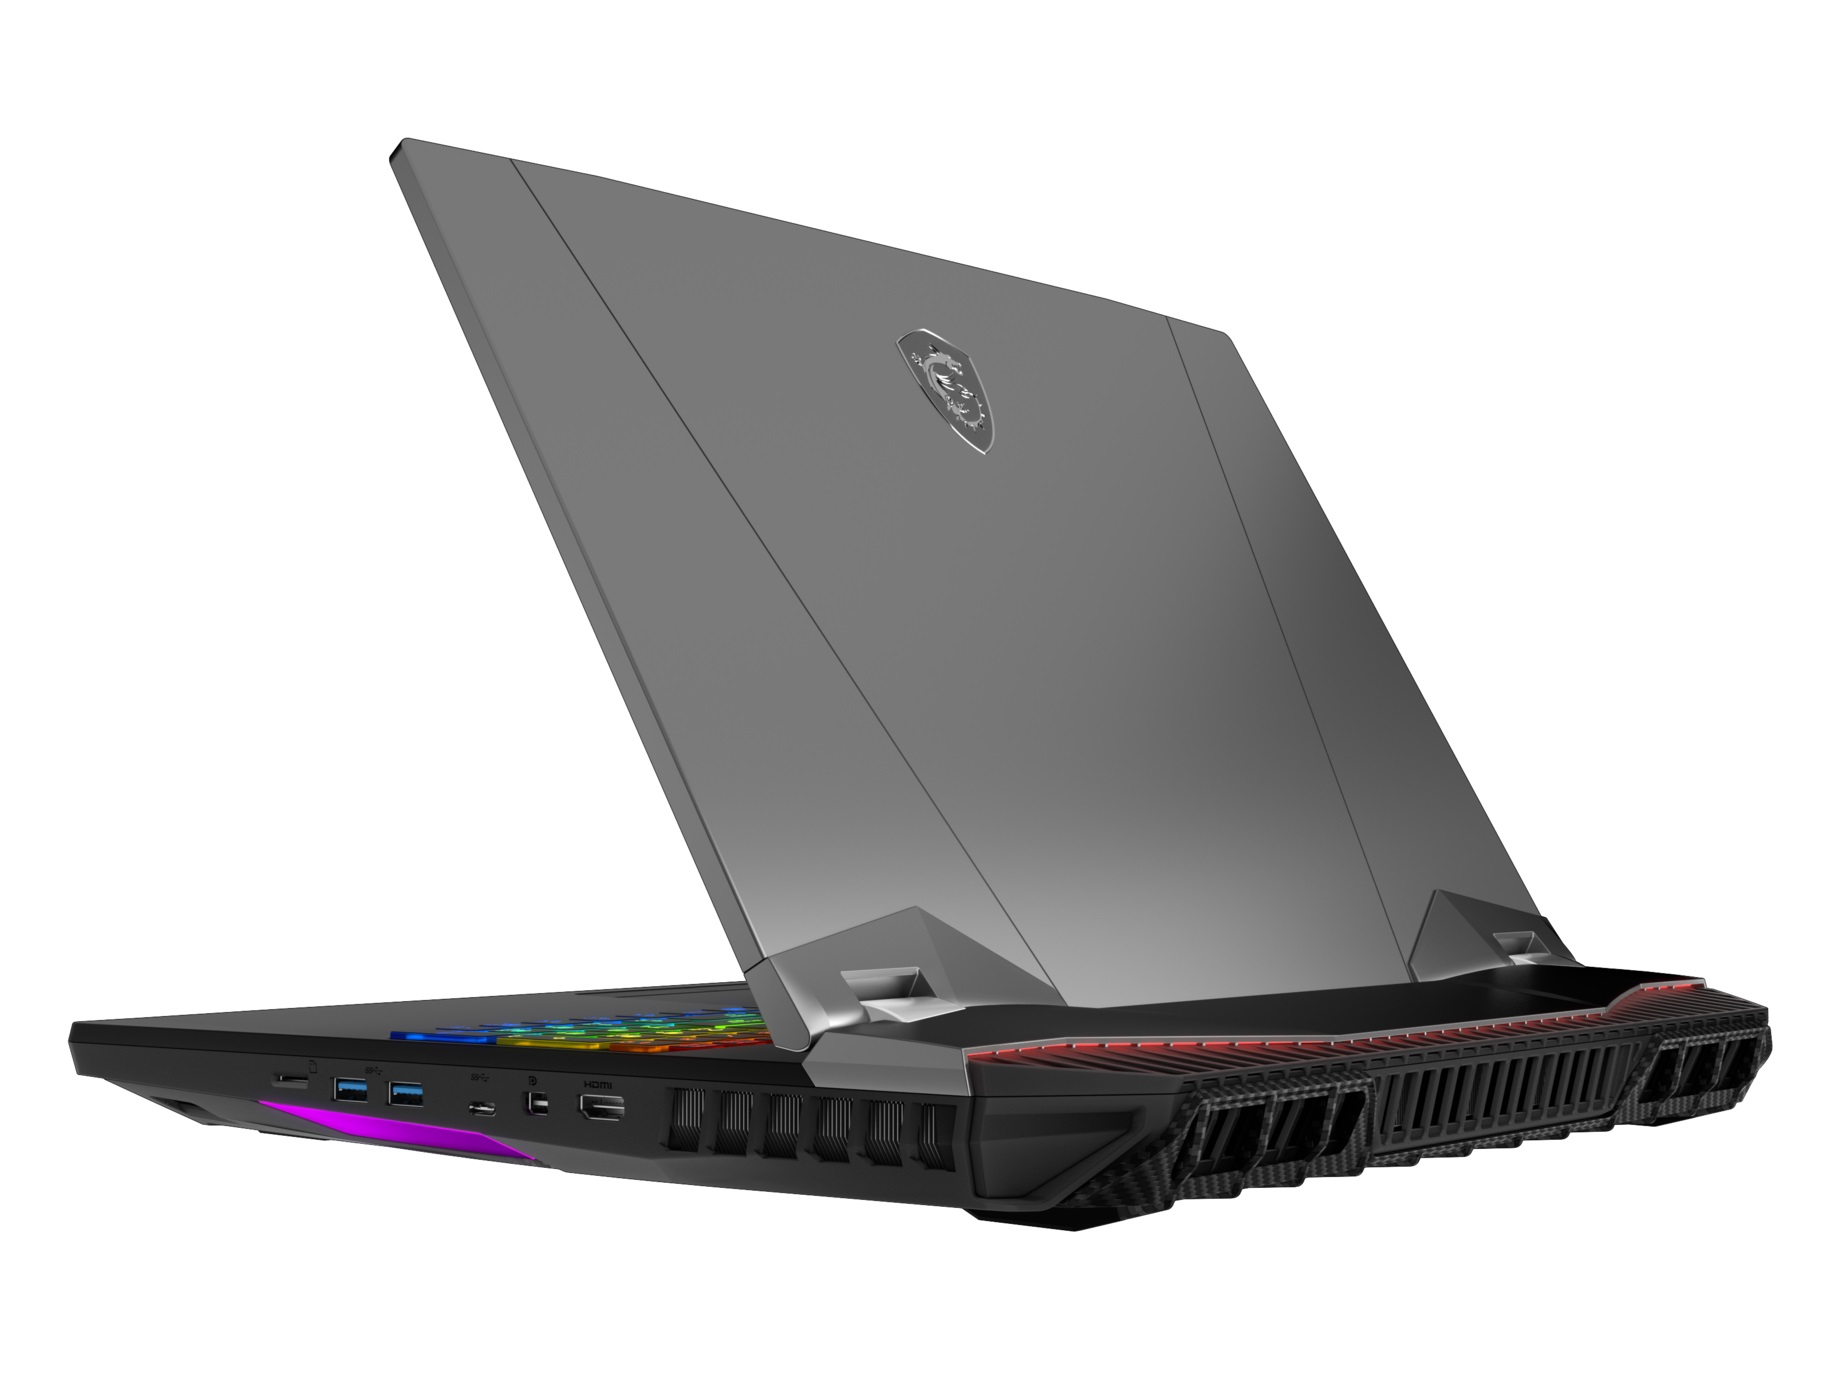 MSI GT76 9SG Laptop Review: The Titan of Gaming Laptops